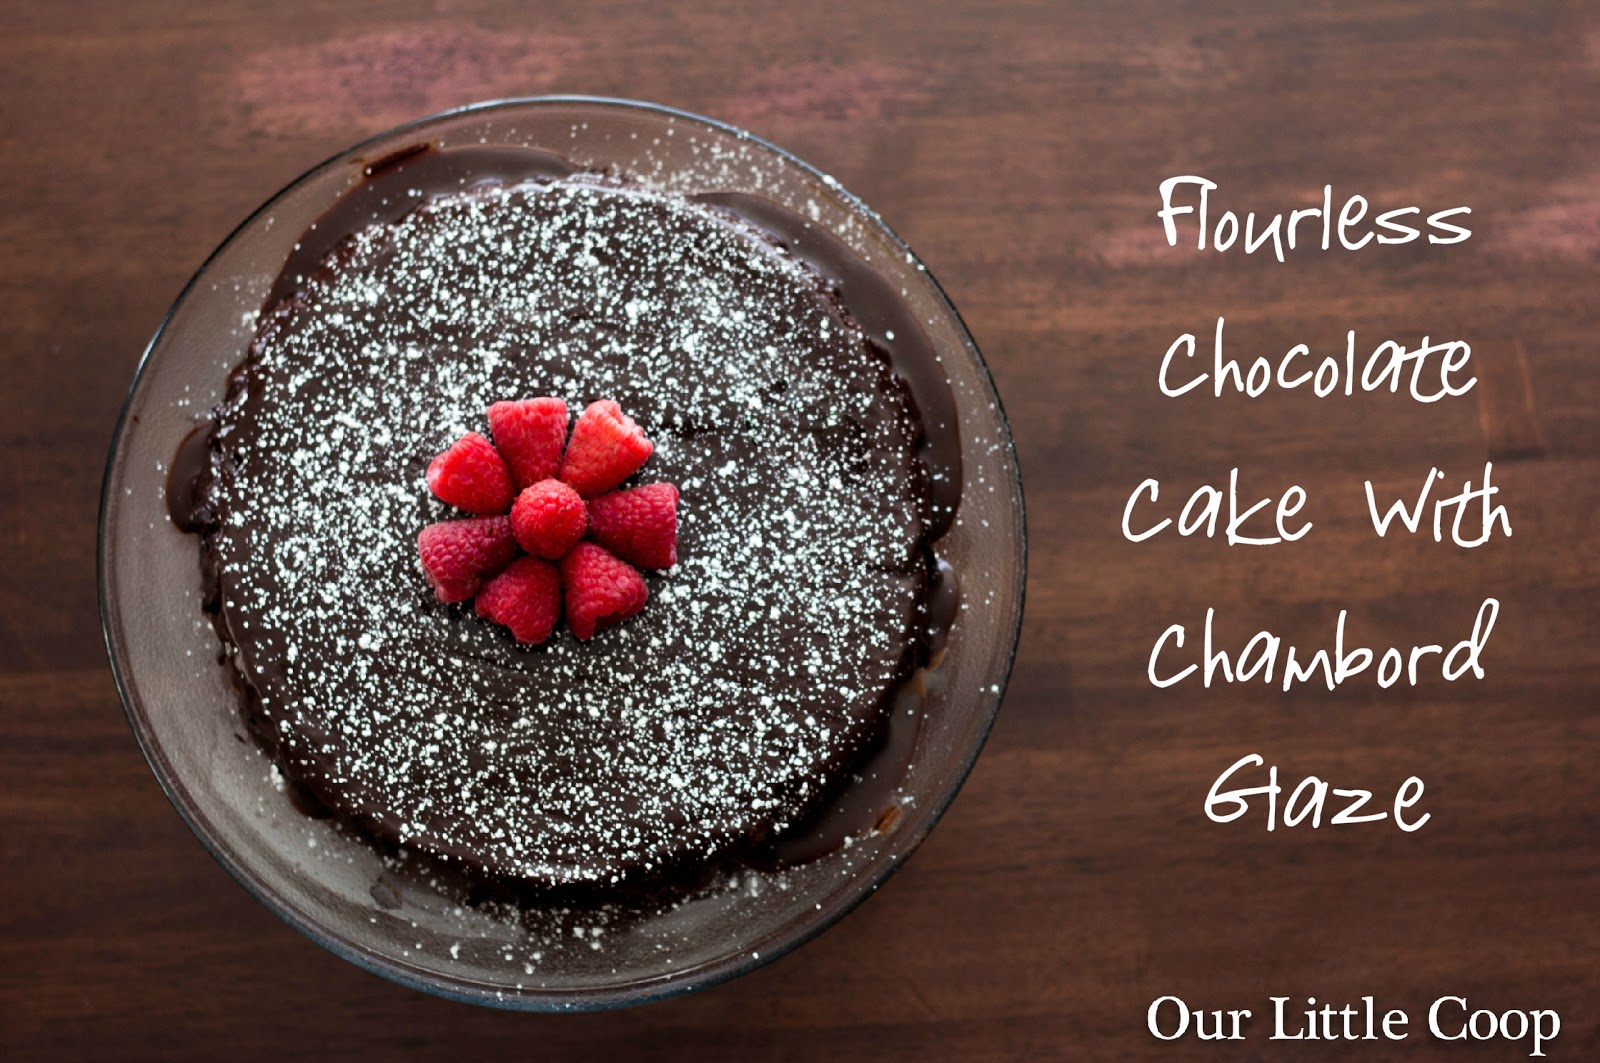 Flourless Chocolate Cake With Chocolate Glaze Recipes — Dishmaps